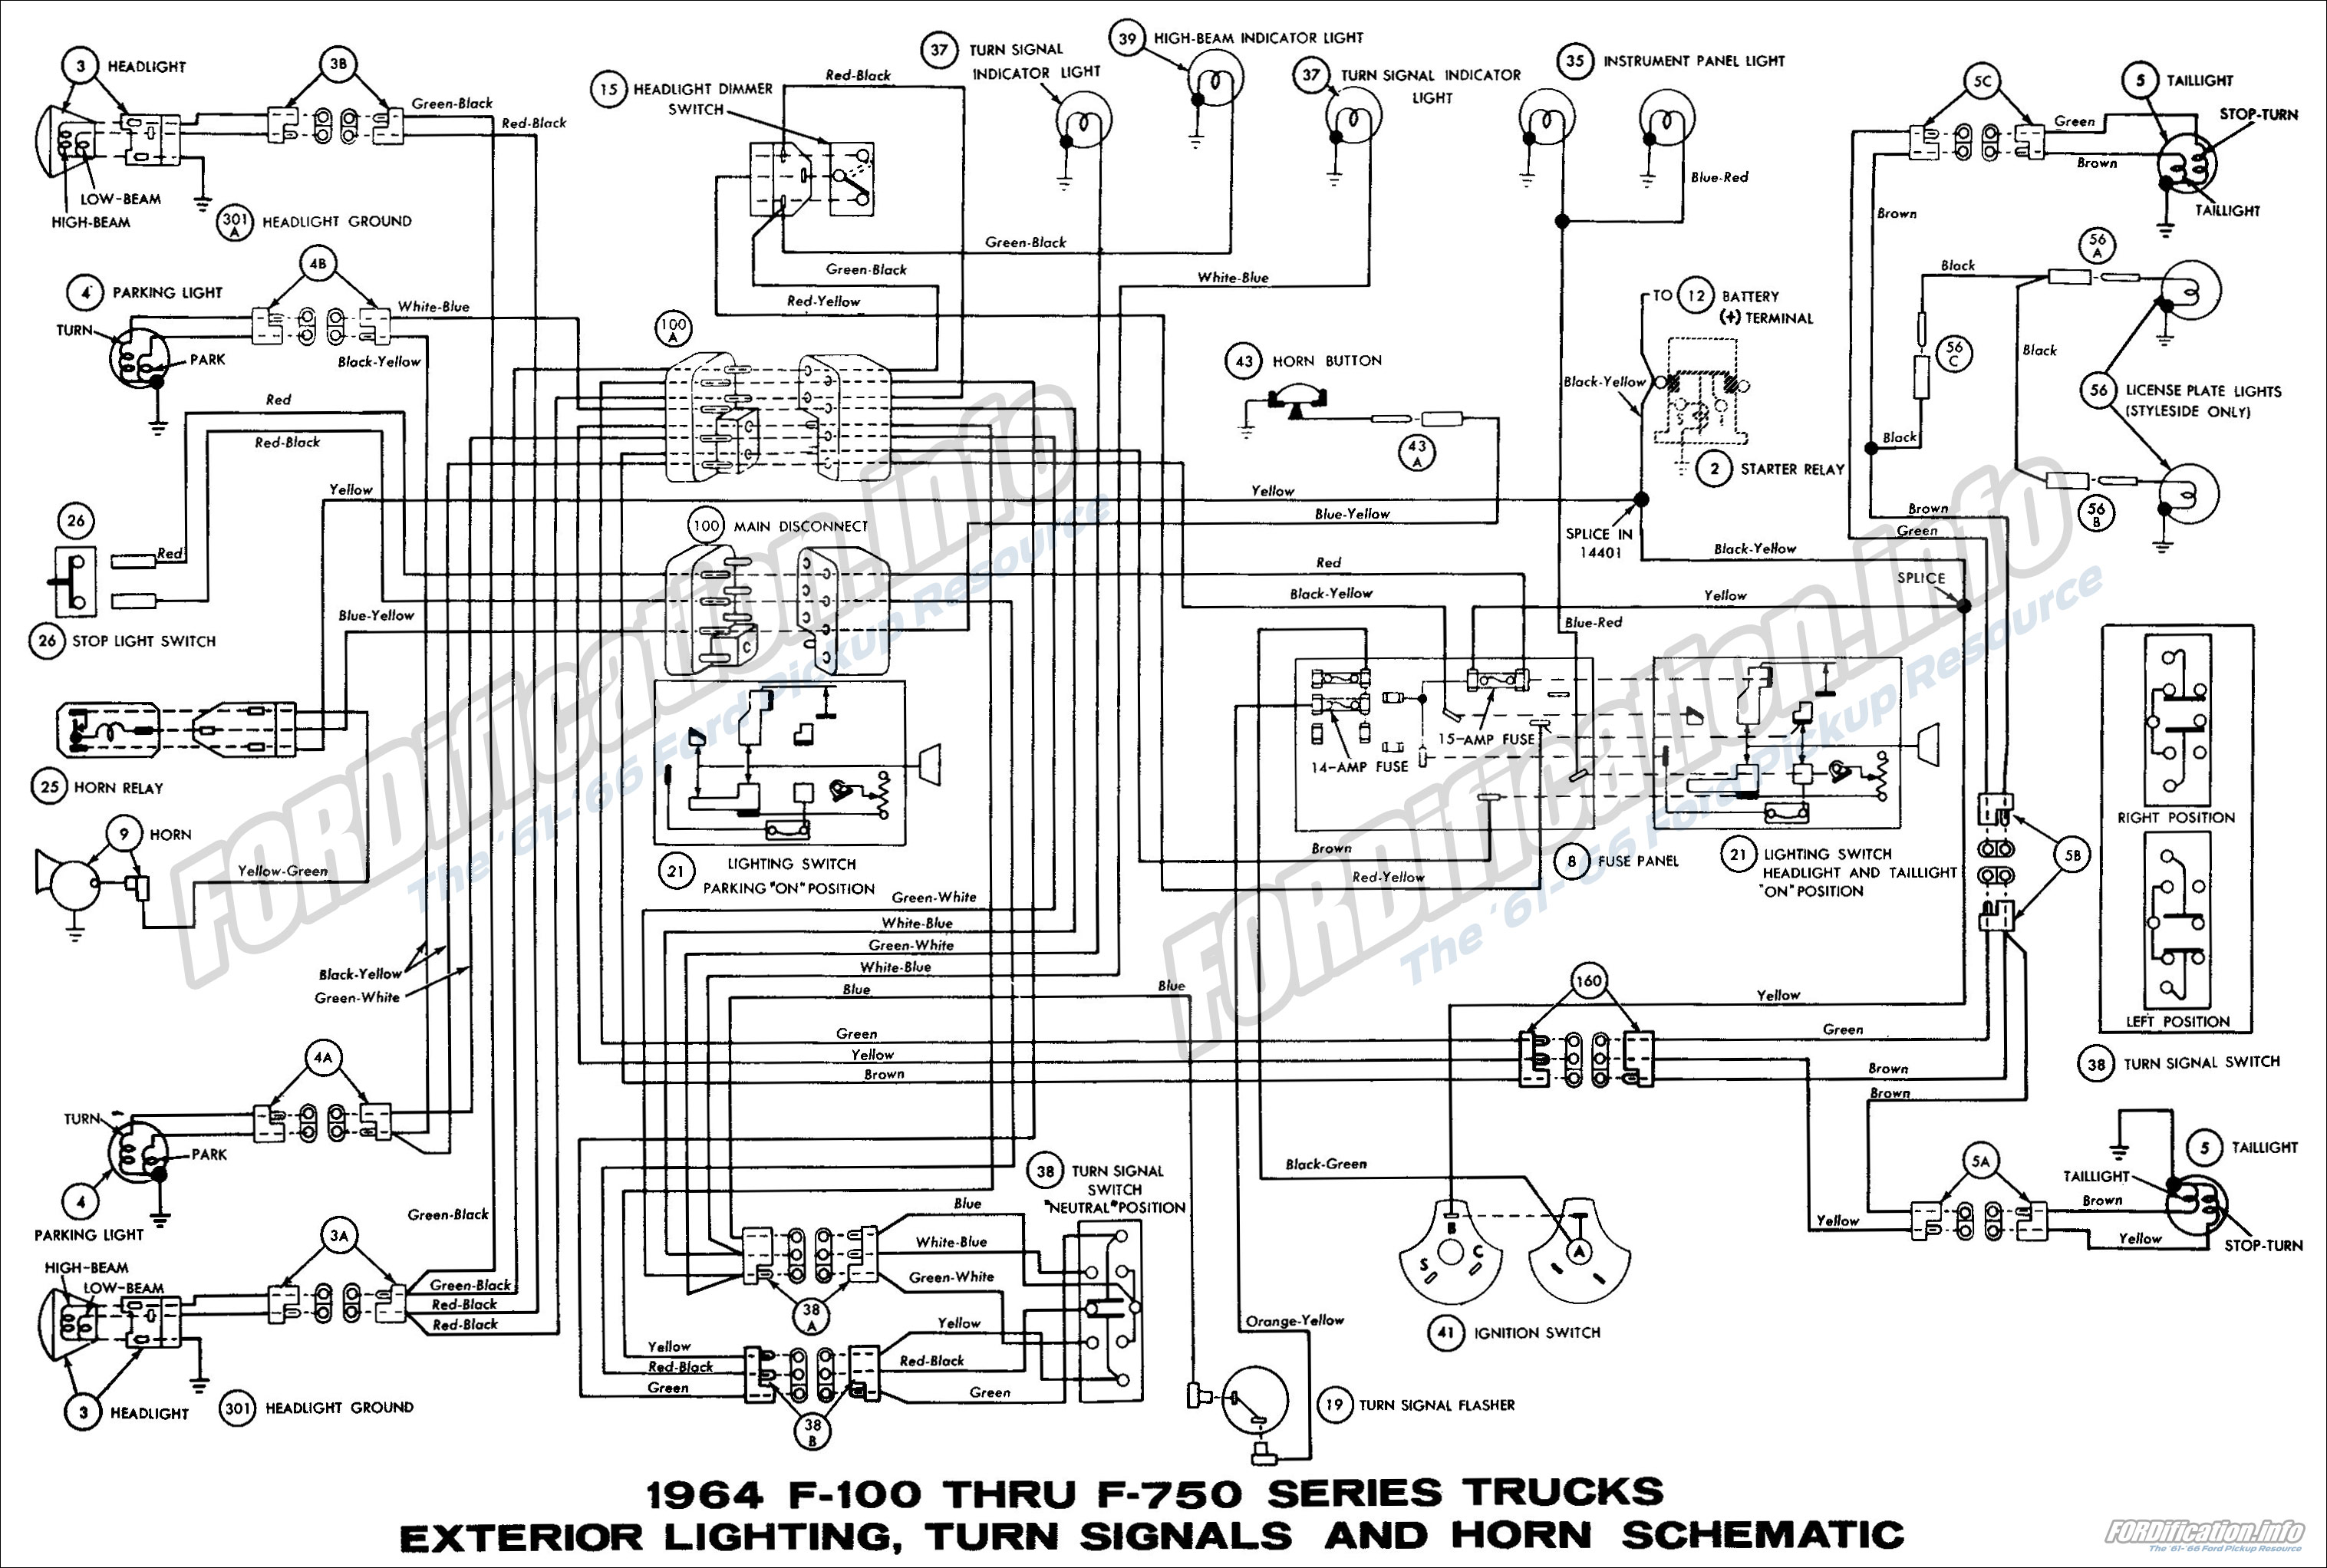 57 chevy truck wire diagram 1964 ford truck wiring diagrams - fordification.info - the ...